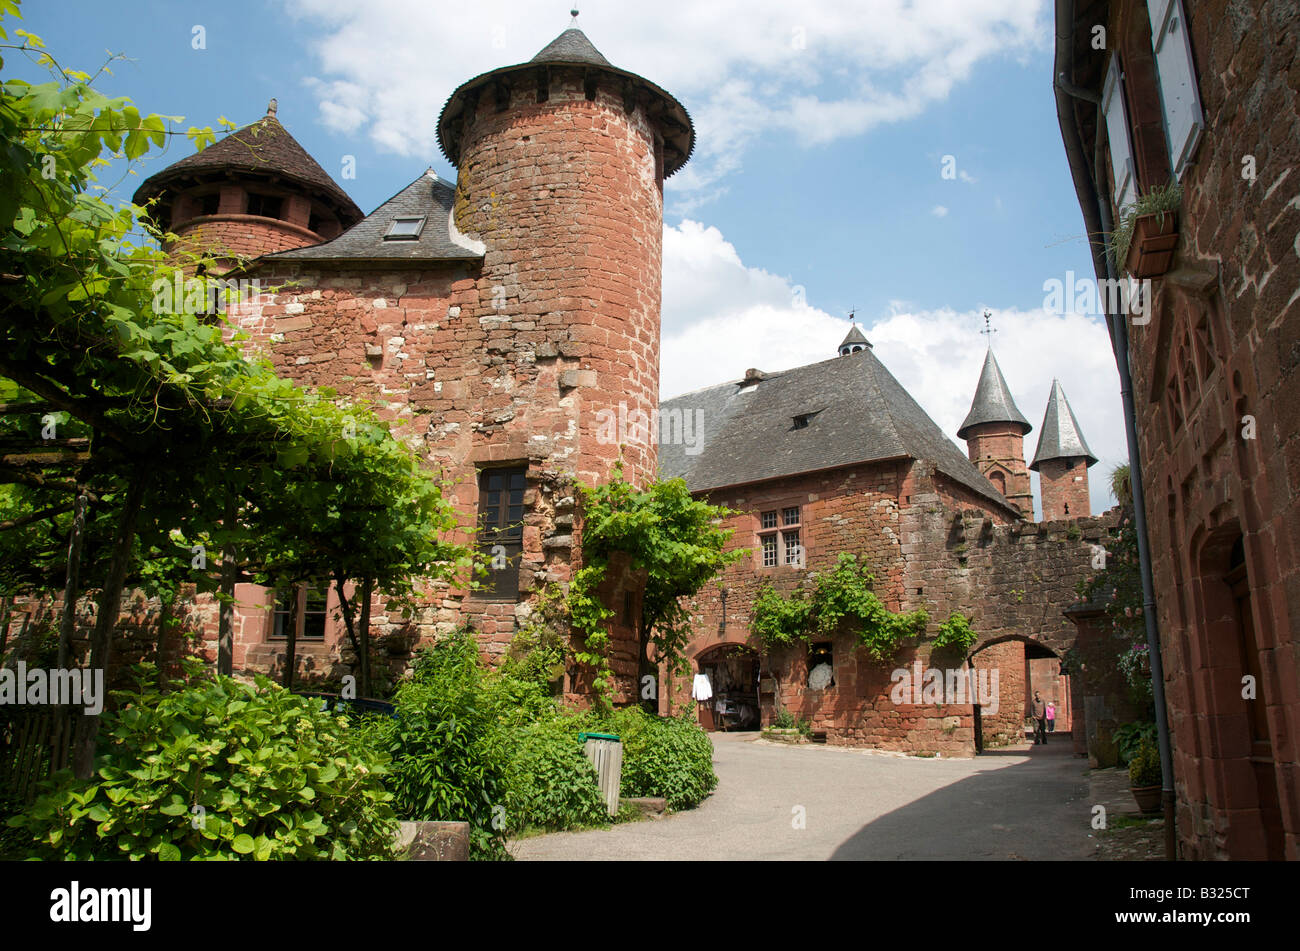 Limousin - Village of Collonges-la-Rouge, Département Corrèze, Region Limousin, France - Stock Image